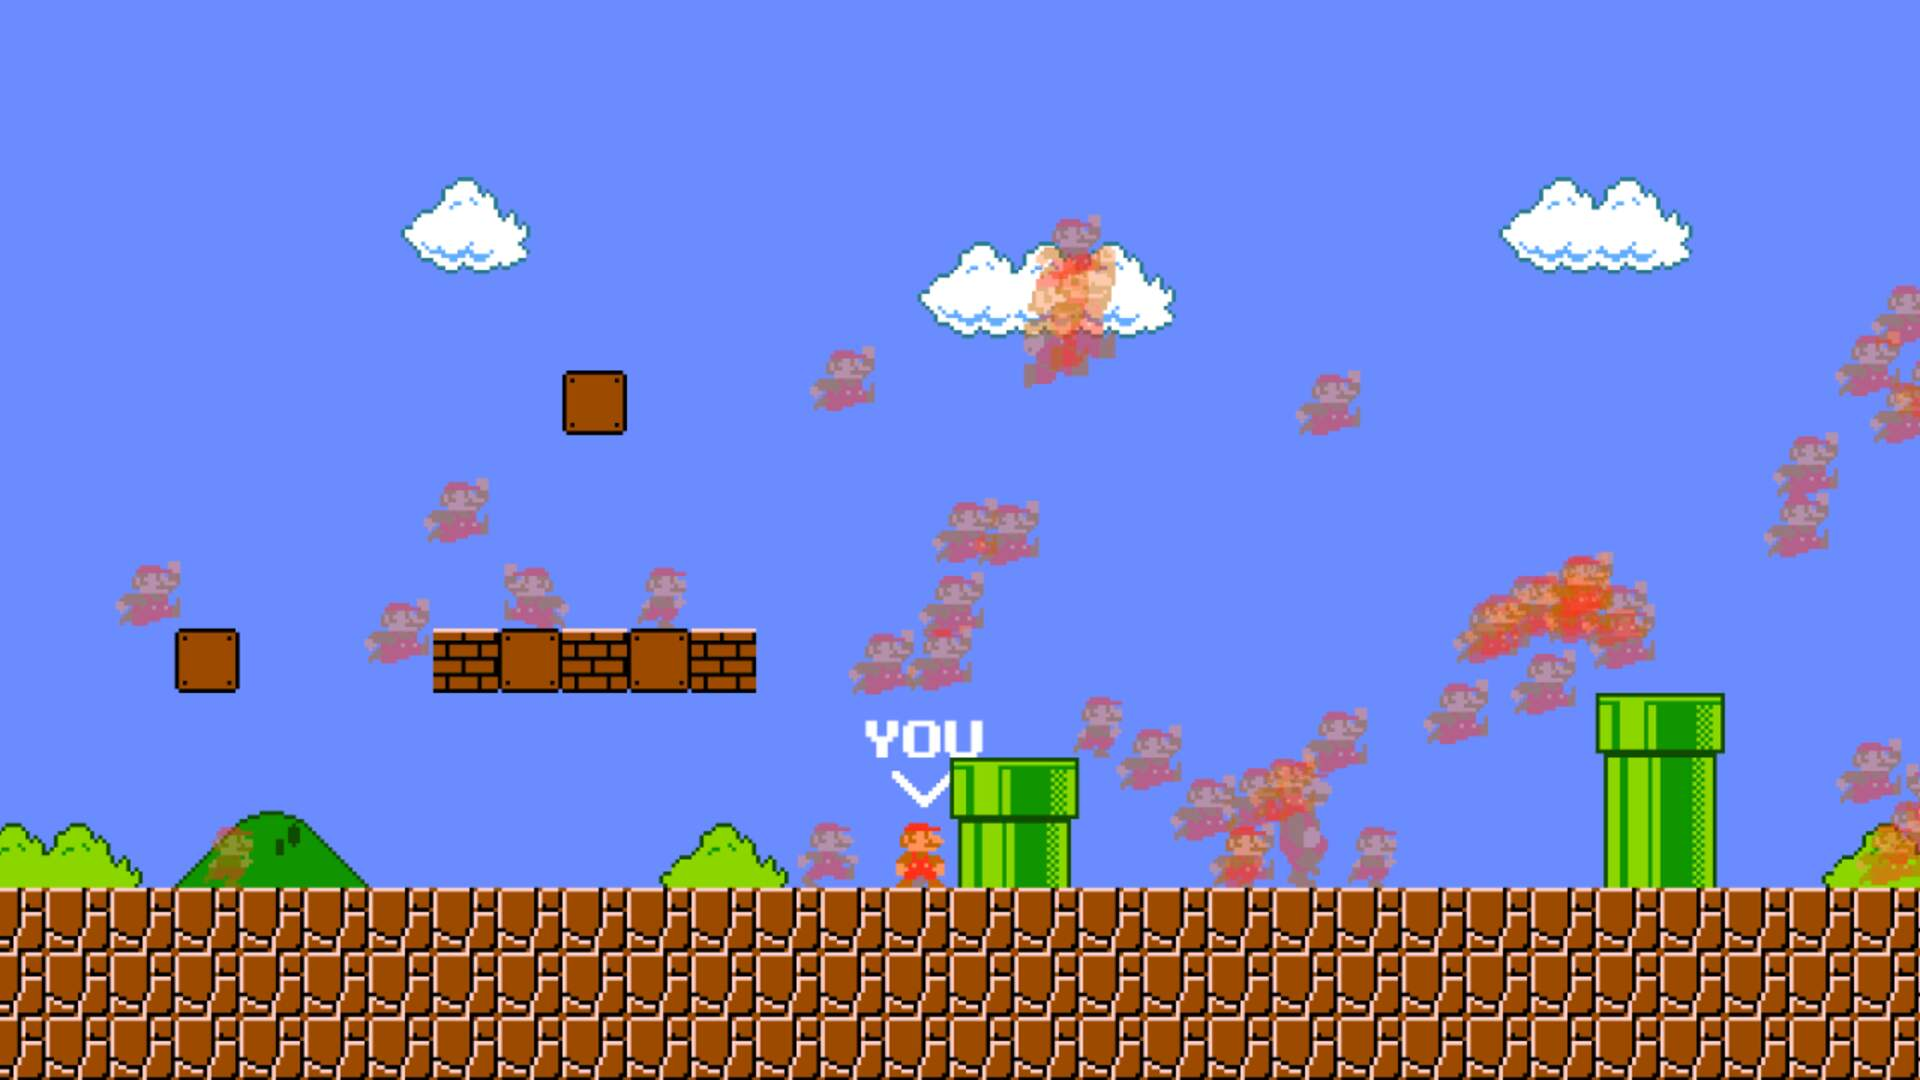 The Platformer Battle Royale Game Formerly Known as Mario Royale Has Officially Been Shut Down by Nintendo